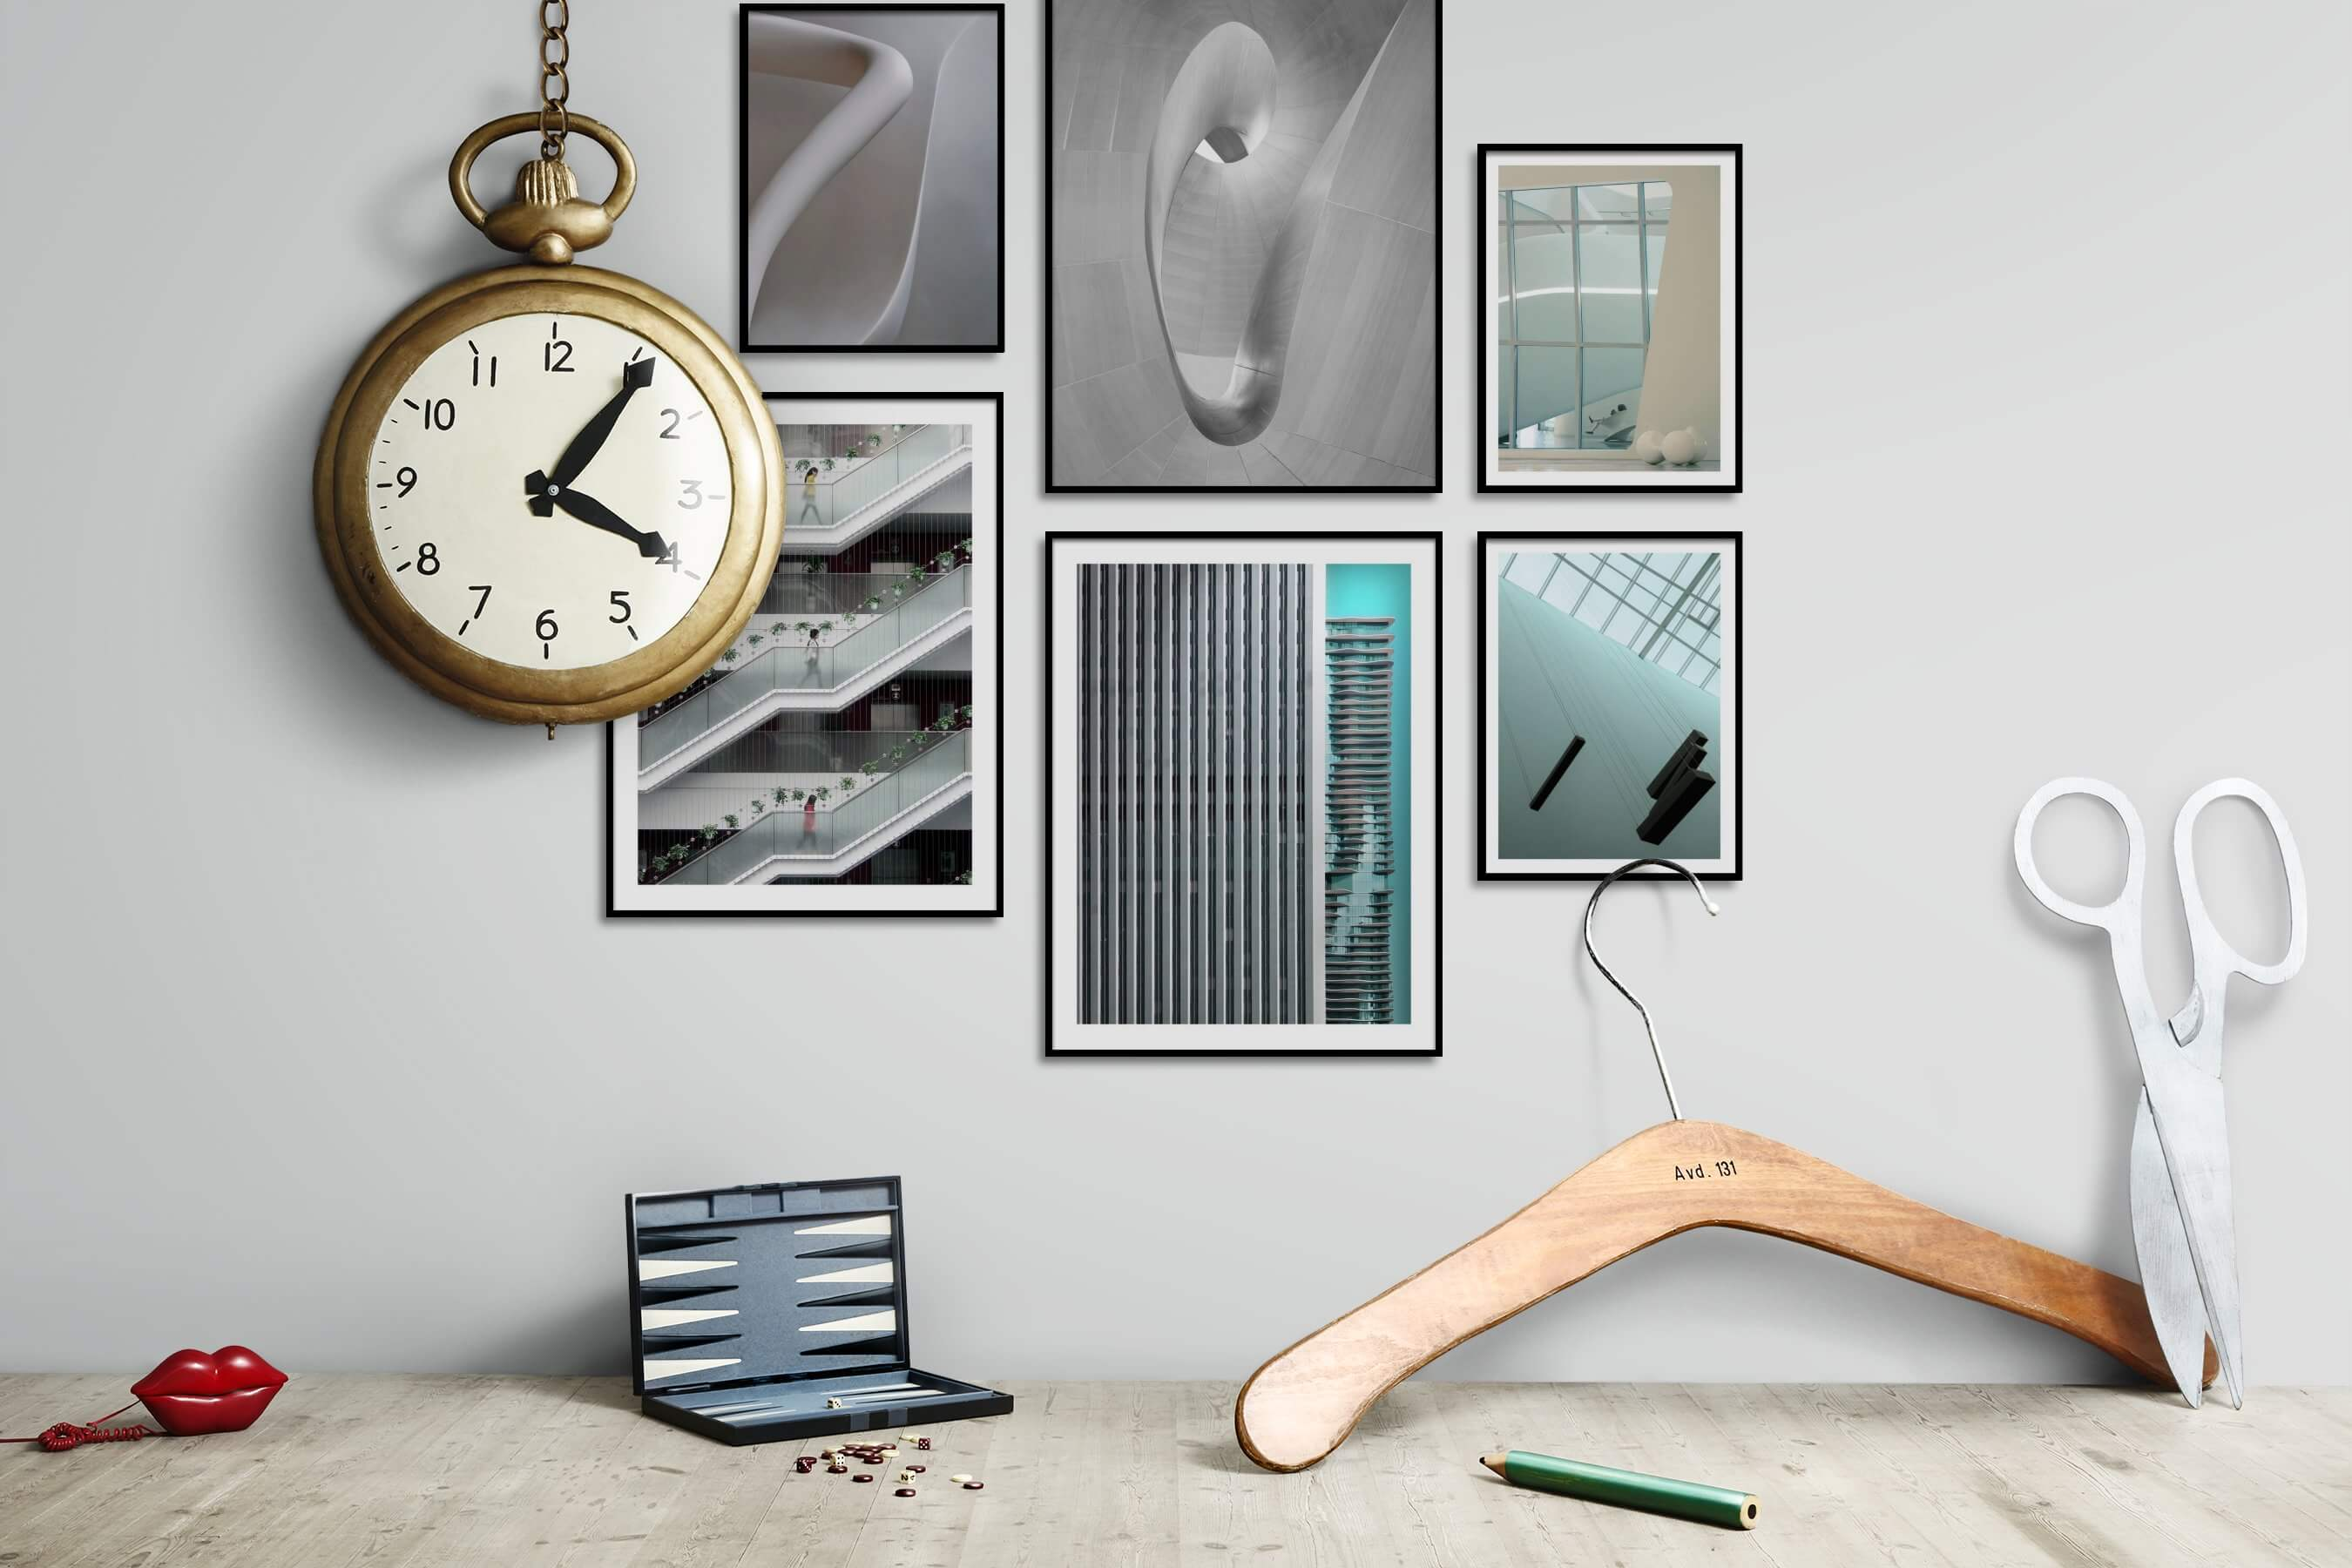 Gallery wall idea with six framed pictures arranged on a wall depicting For the Minimalist, Black & White, For the Moderate, City Life, and For the Maximalist